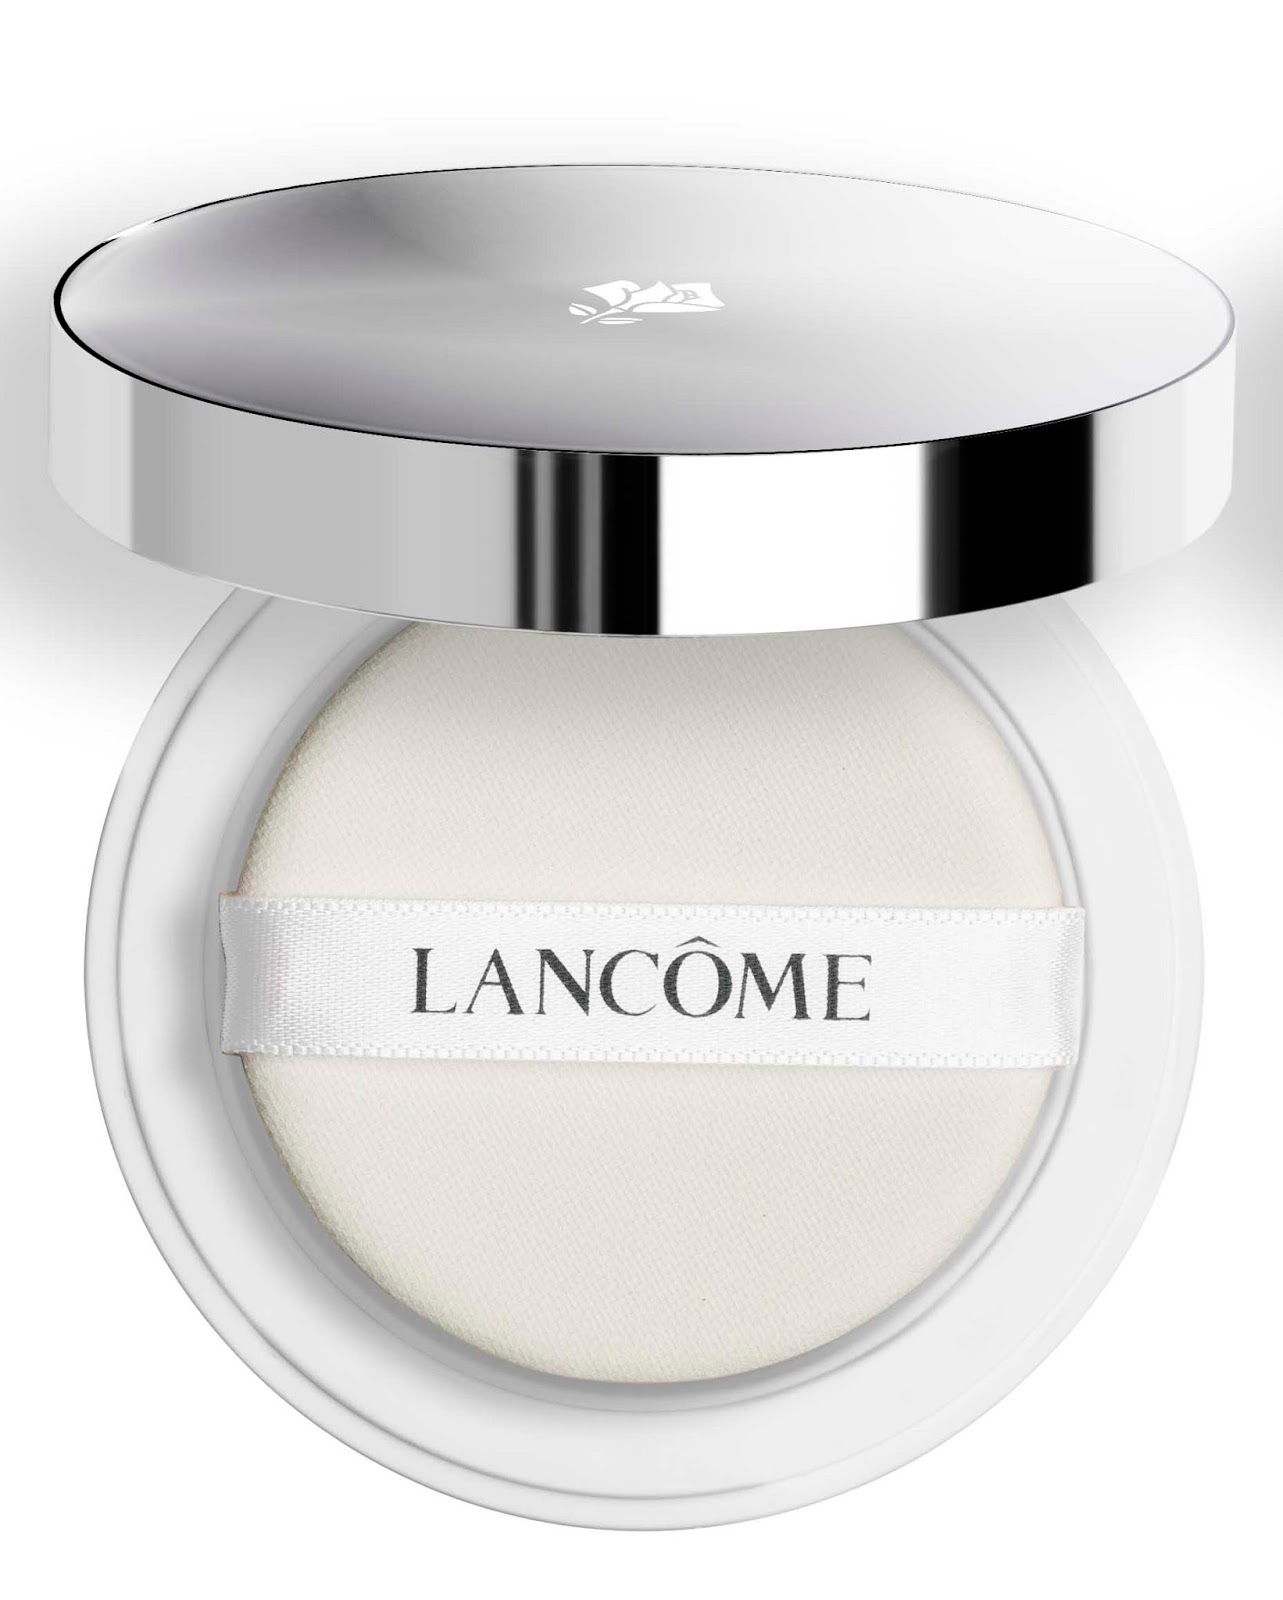 miracle Cushion Lancome nuovo fondotinta